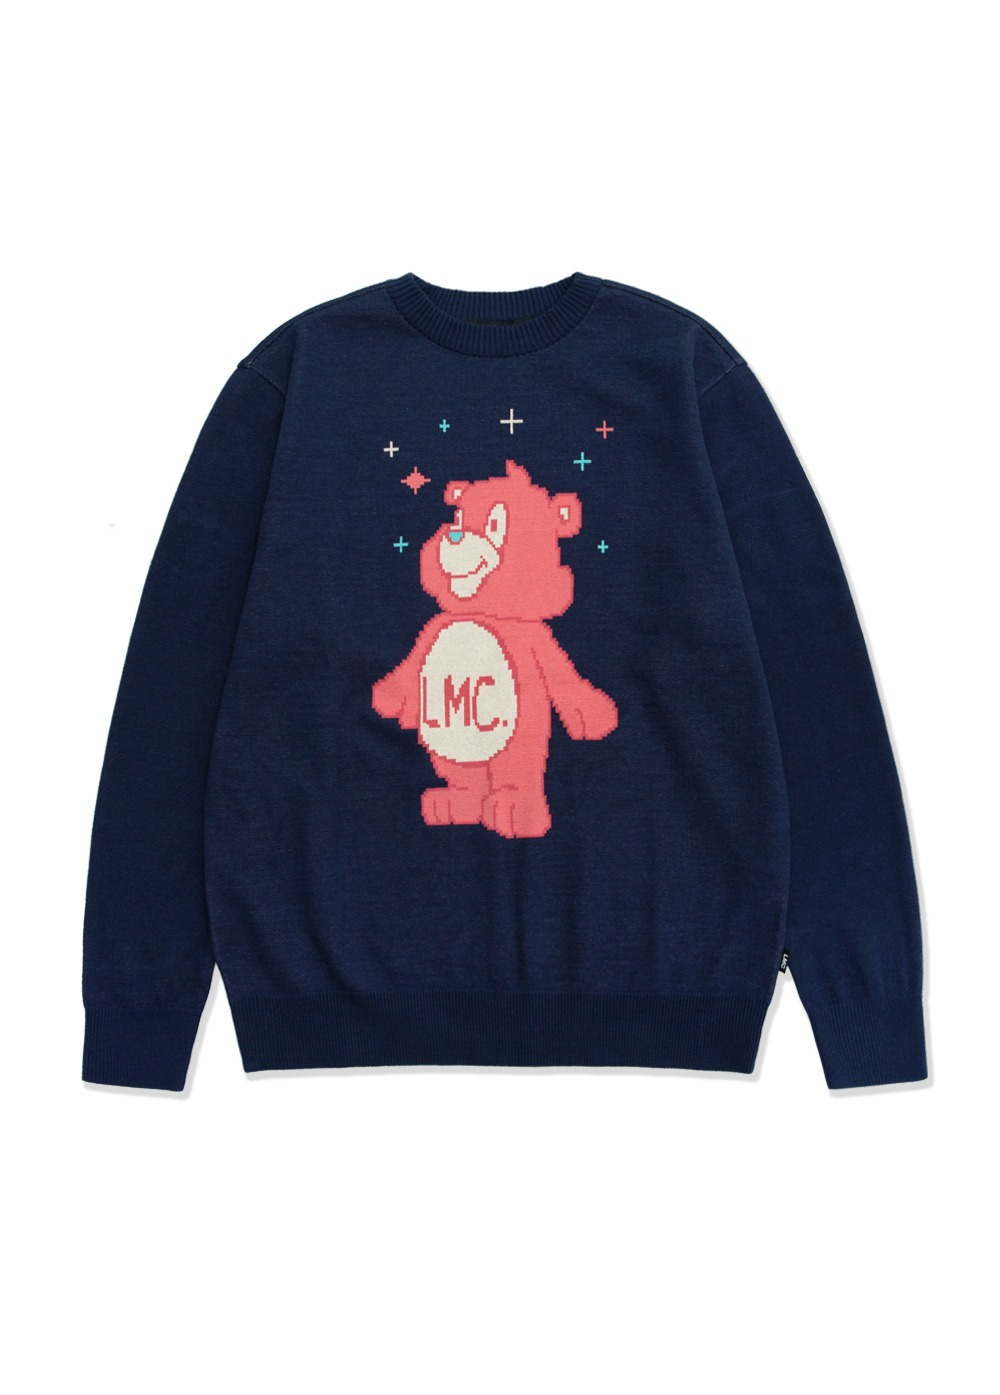 LMC BEAR KNIT SWEATER navy